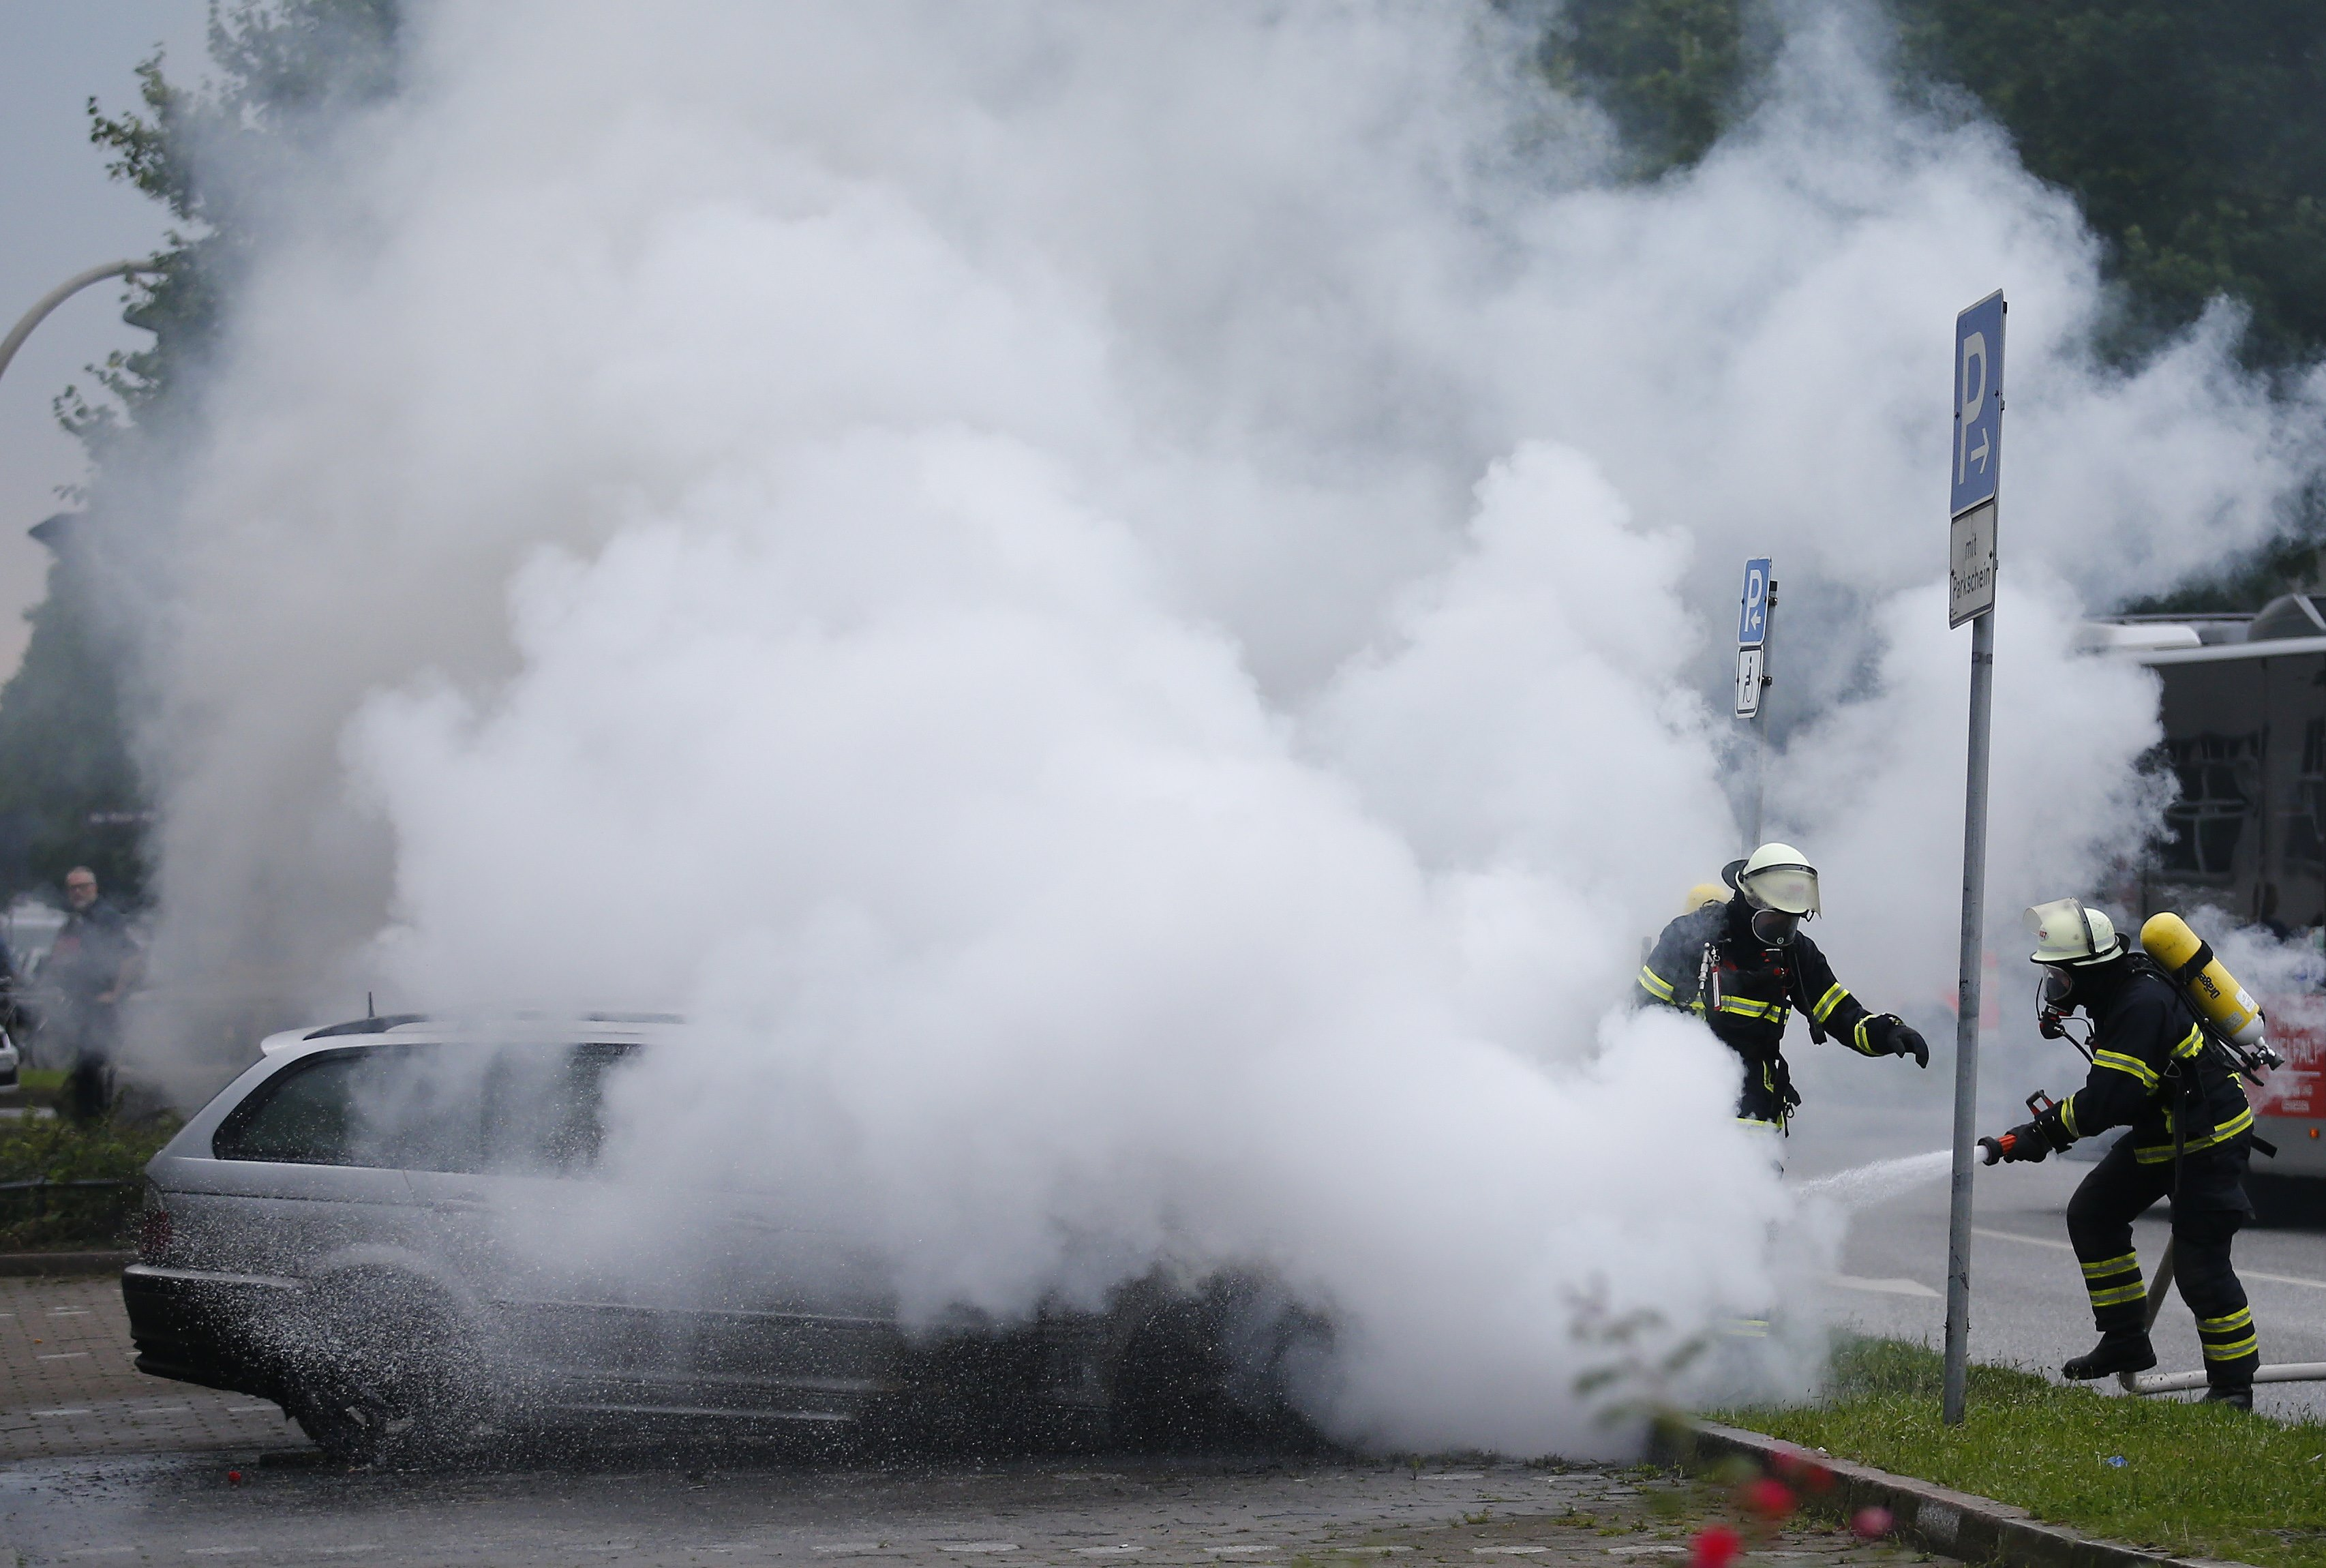 2017-07-07T061412Z 1435210371 UP1ED770HBNHB RTRMADP 3 G20-GERMANY-PROTEST